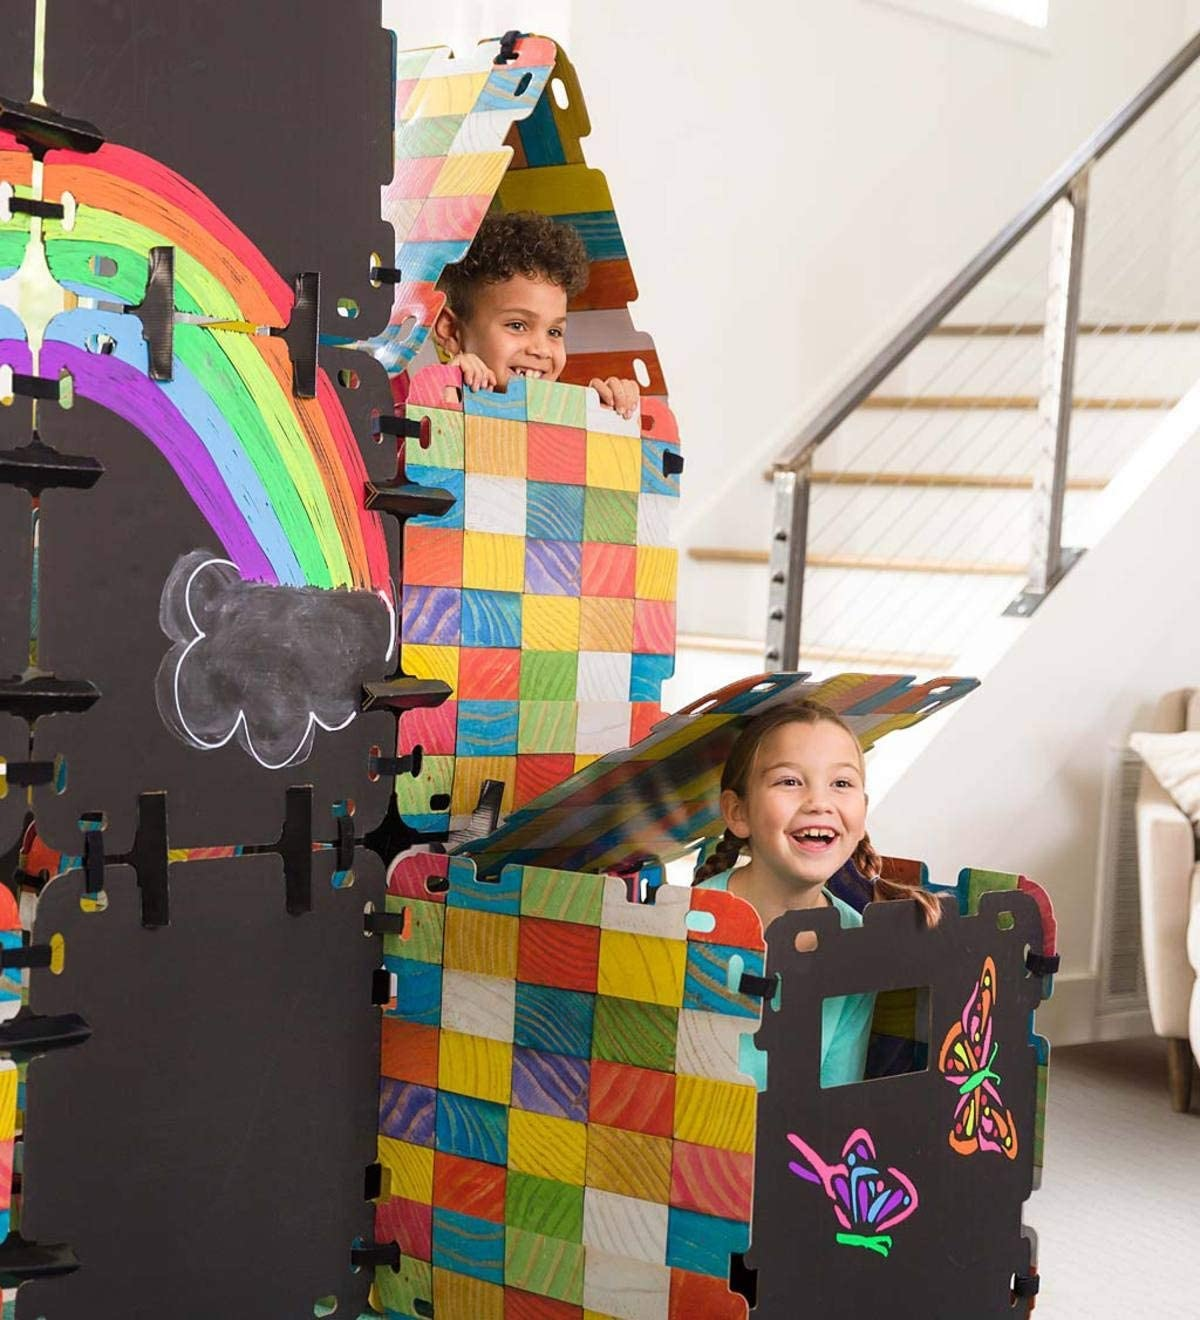 Hearthsong Colorblock Chalkboard Build-A-Fort Kit